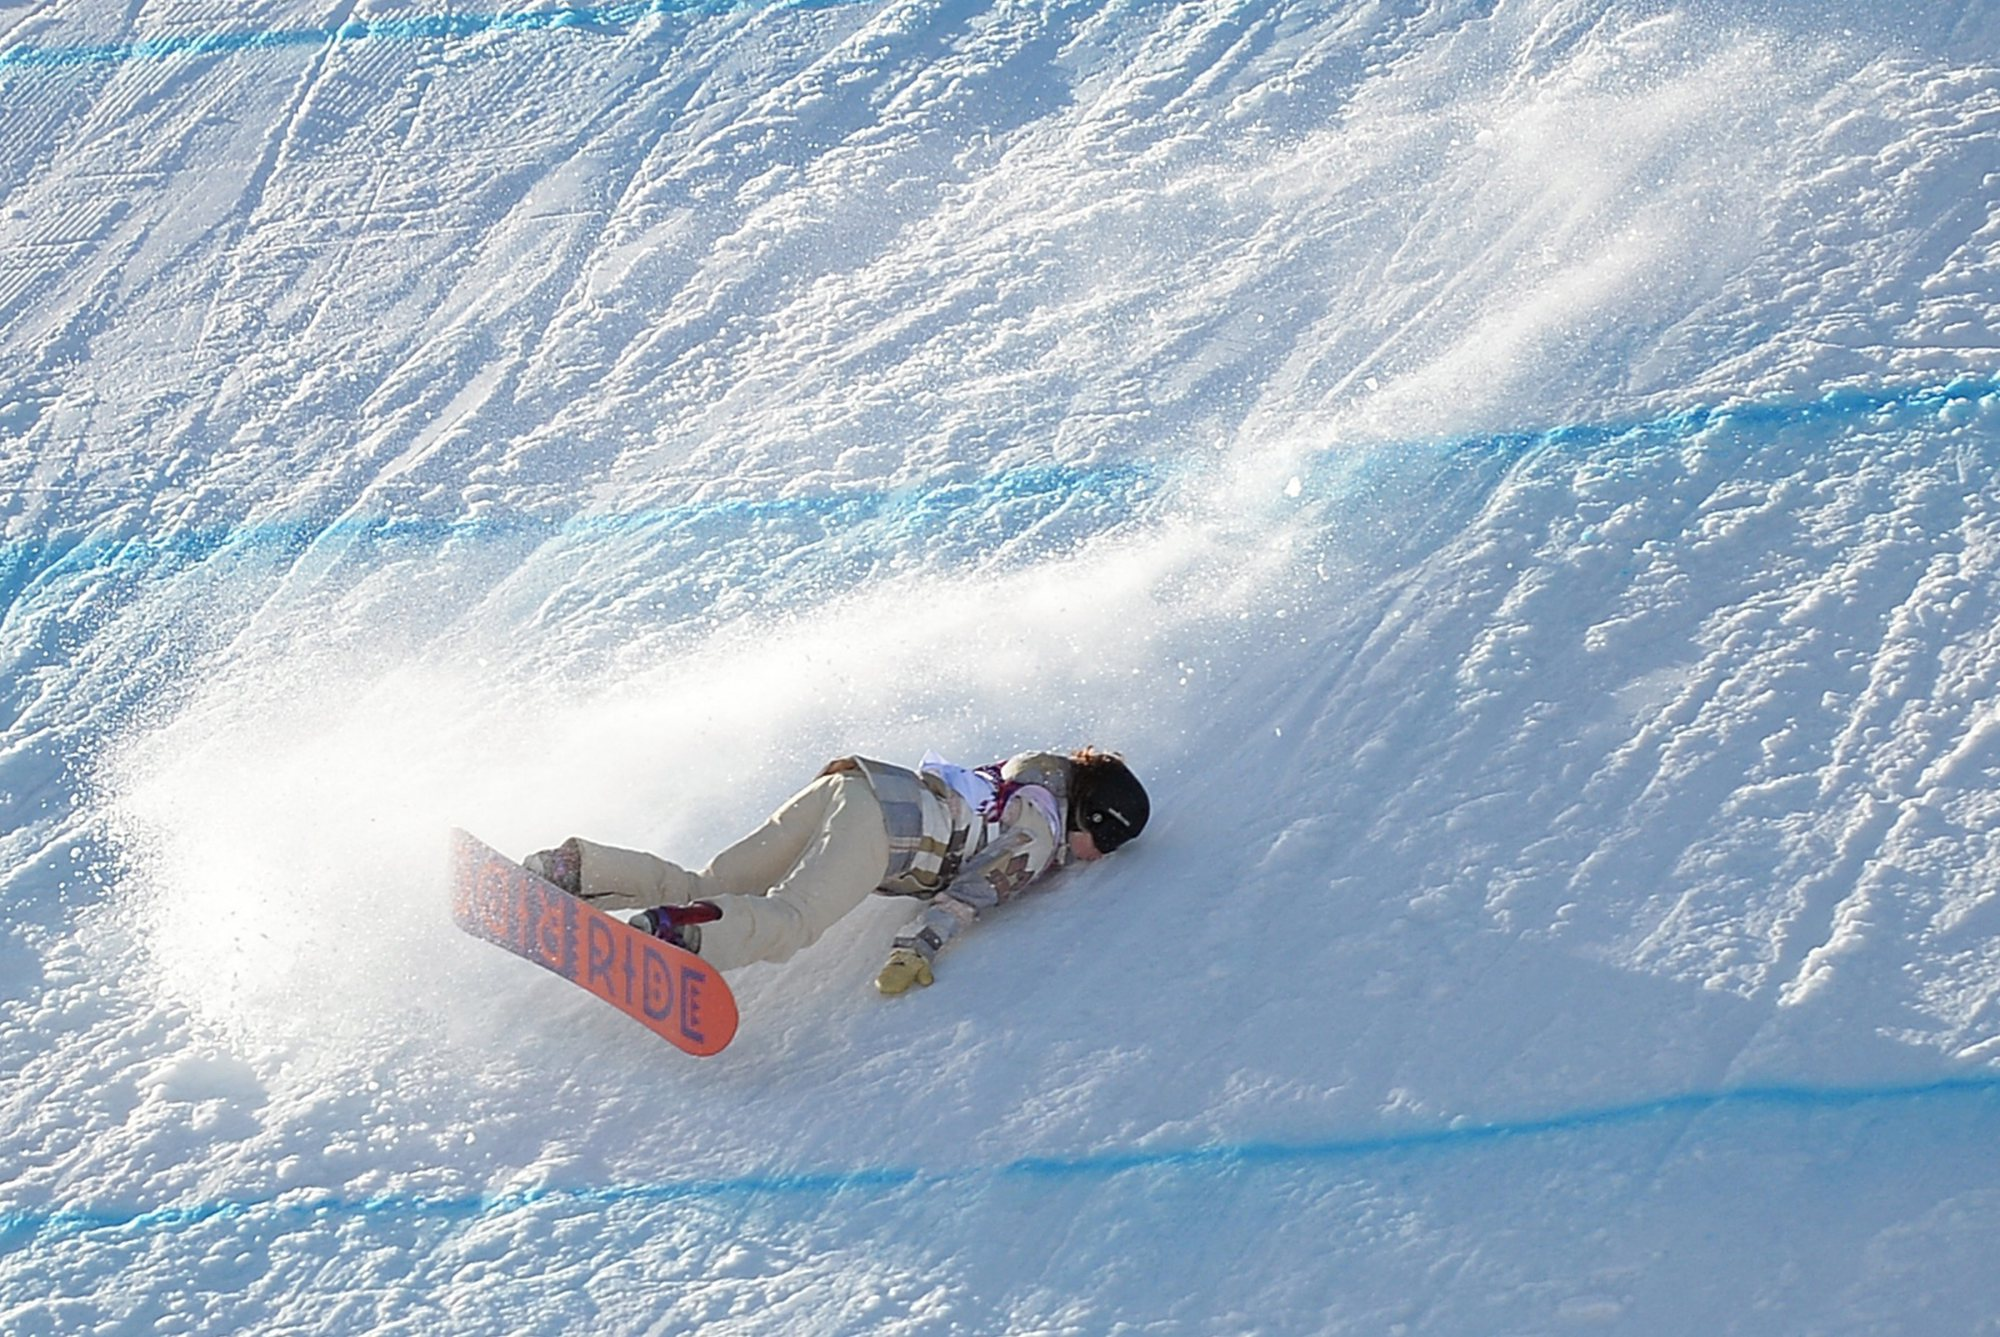 Jessika Jensen of the USA takes a fall during the ladies' snowboarding slopestyle qualifications at the Rosa Khutor Extreme Park at the Winter Olympics in Sochi, Russia, Feb. 6, 2014.